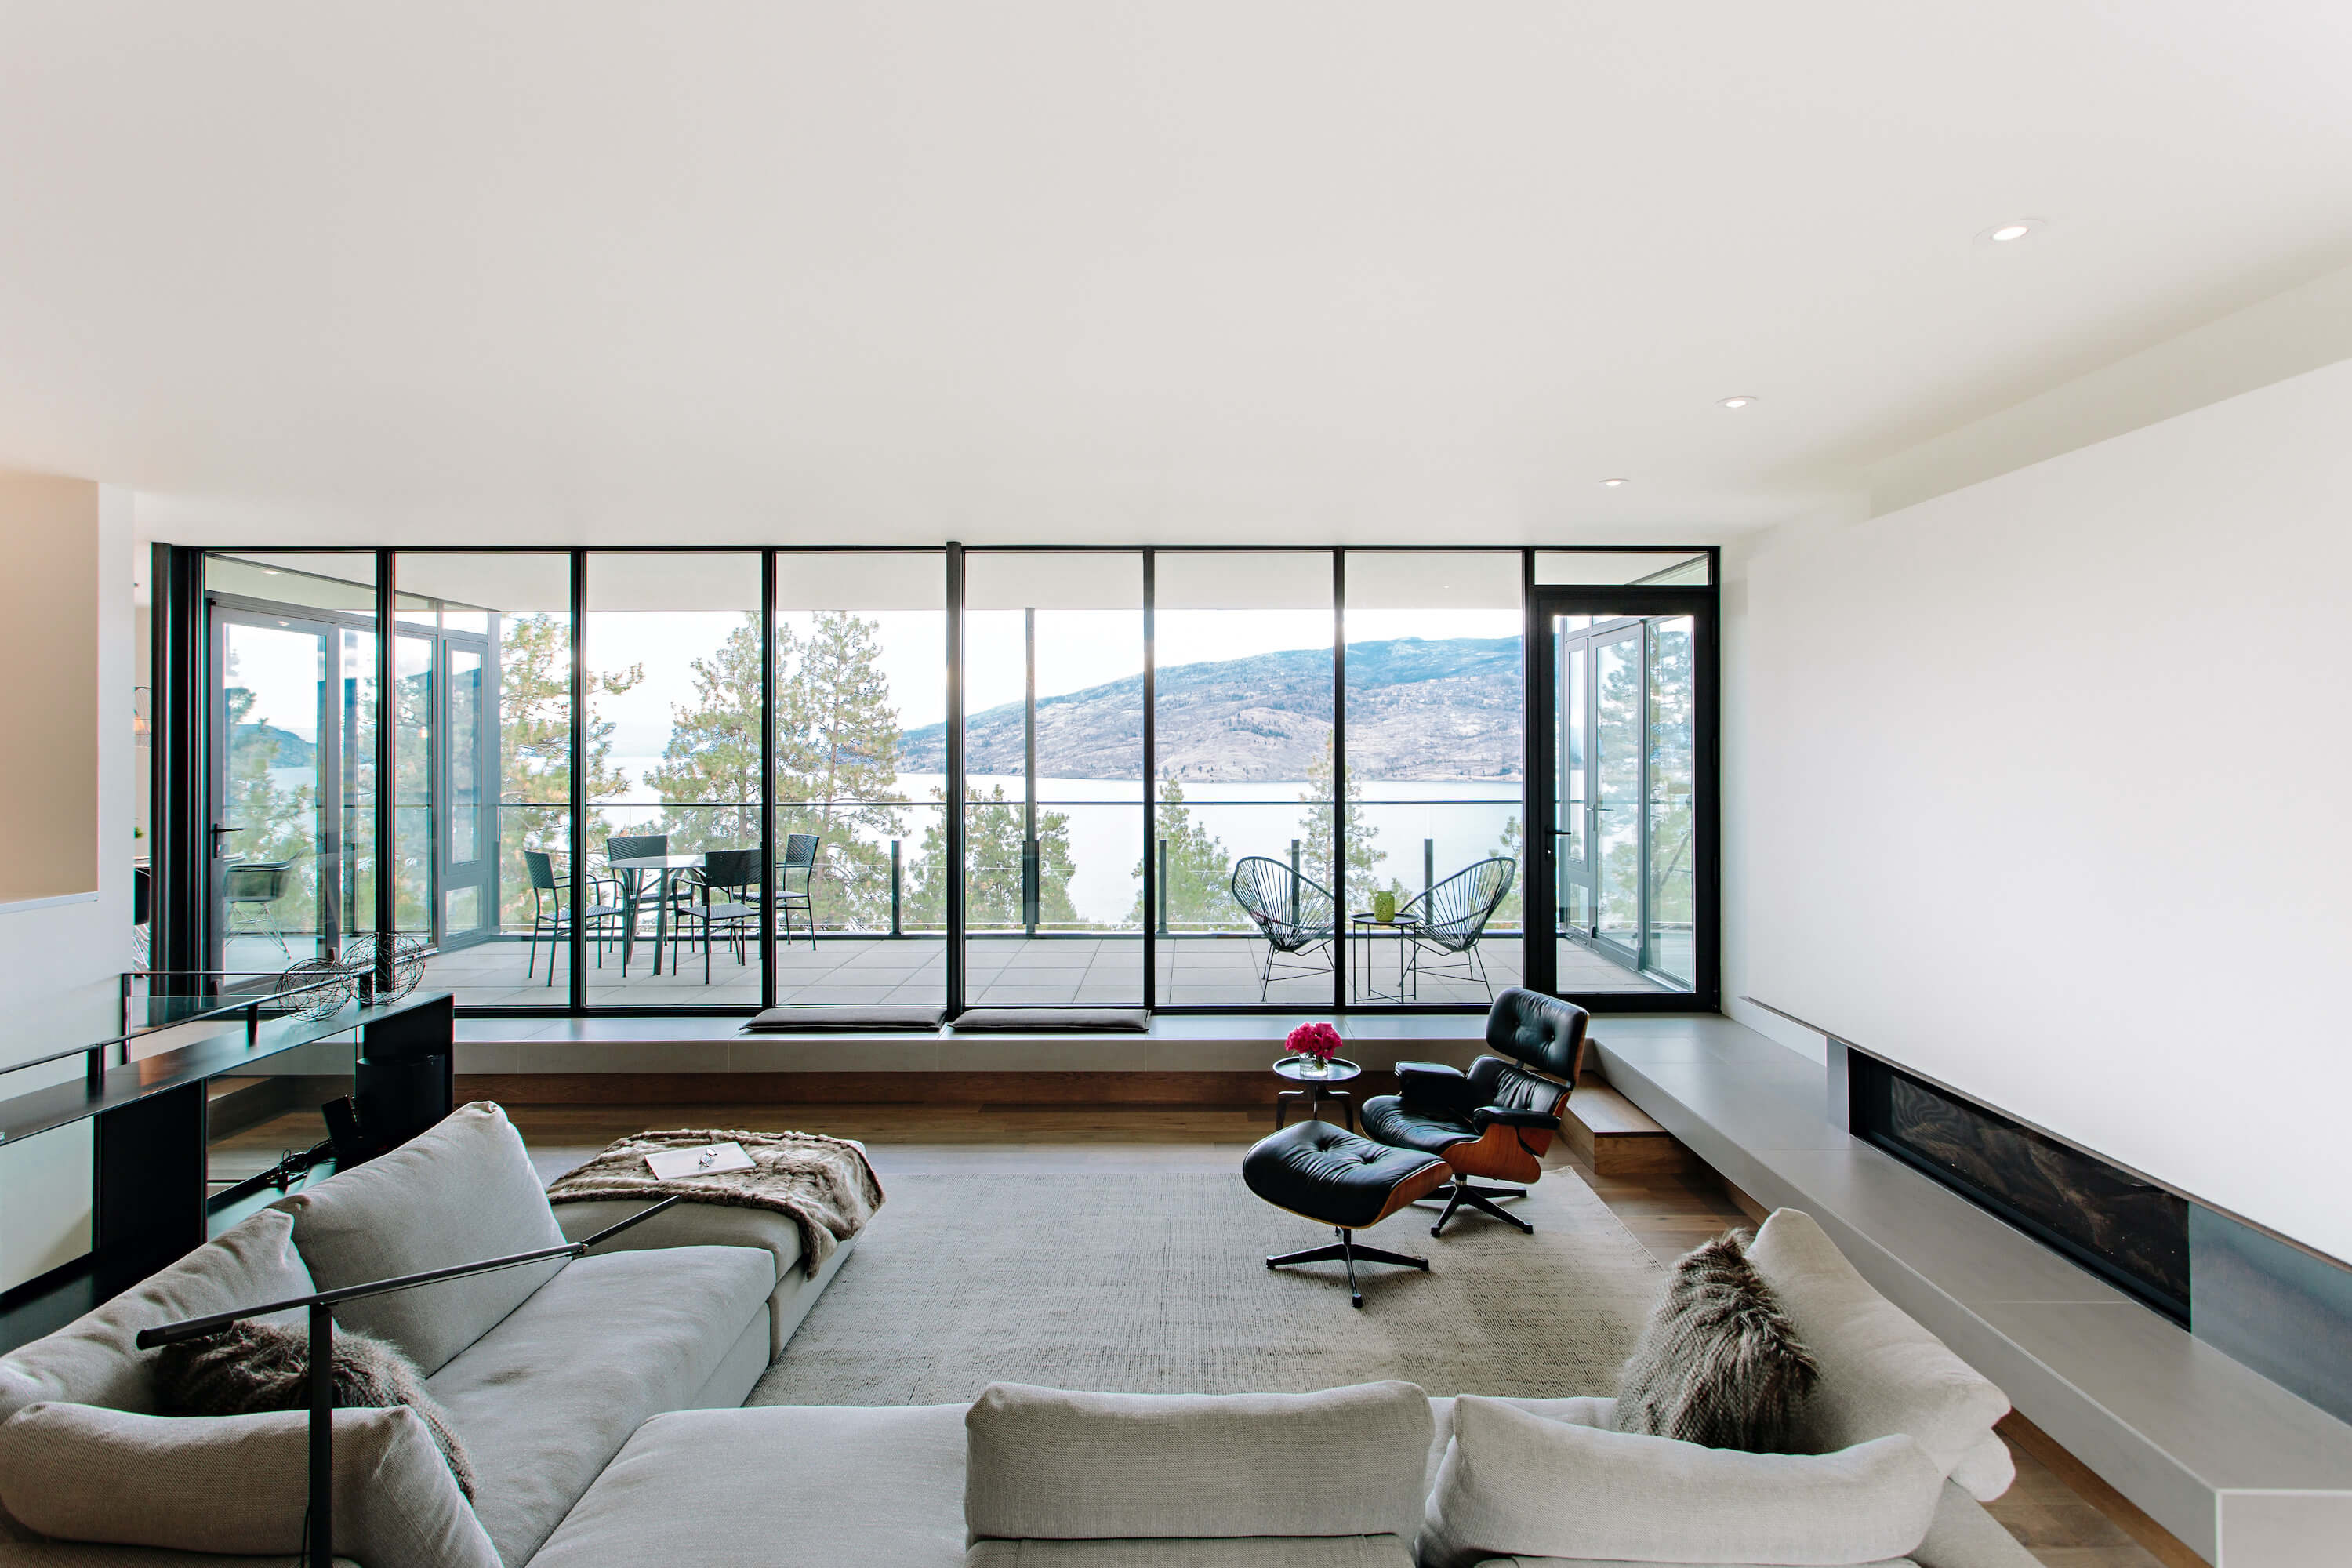 Lakebend View Residence by Ritchie Custom Homes